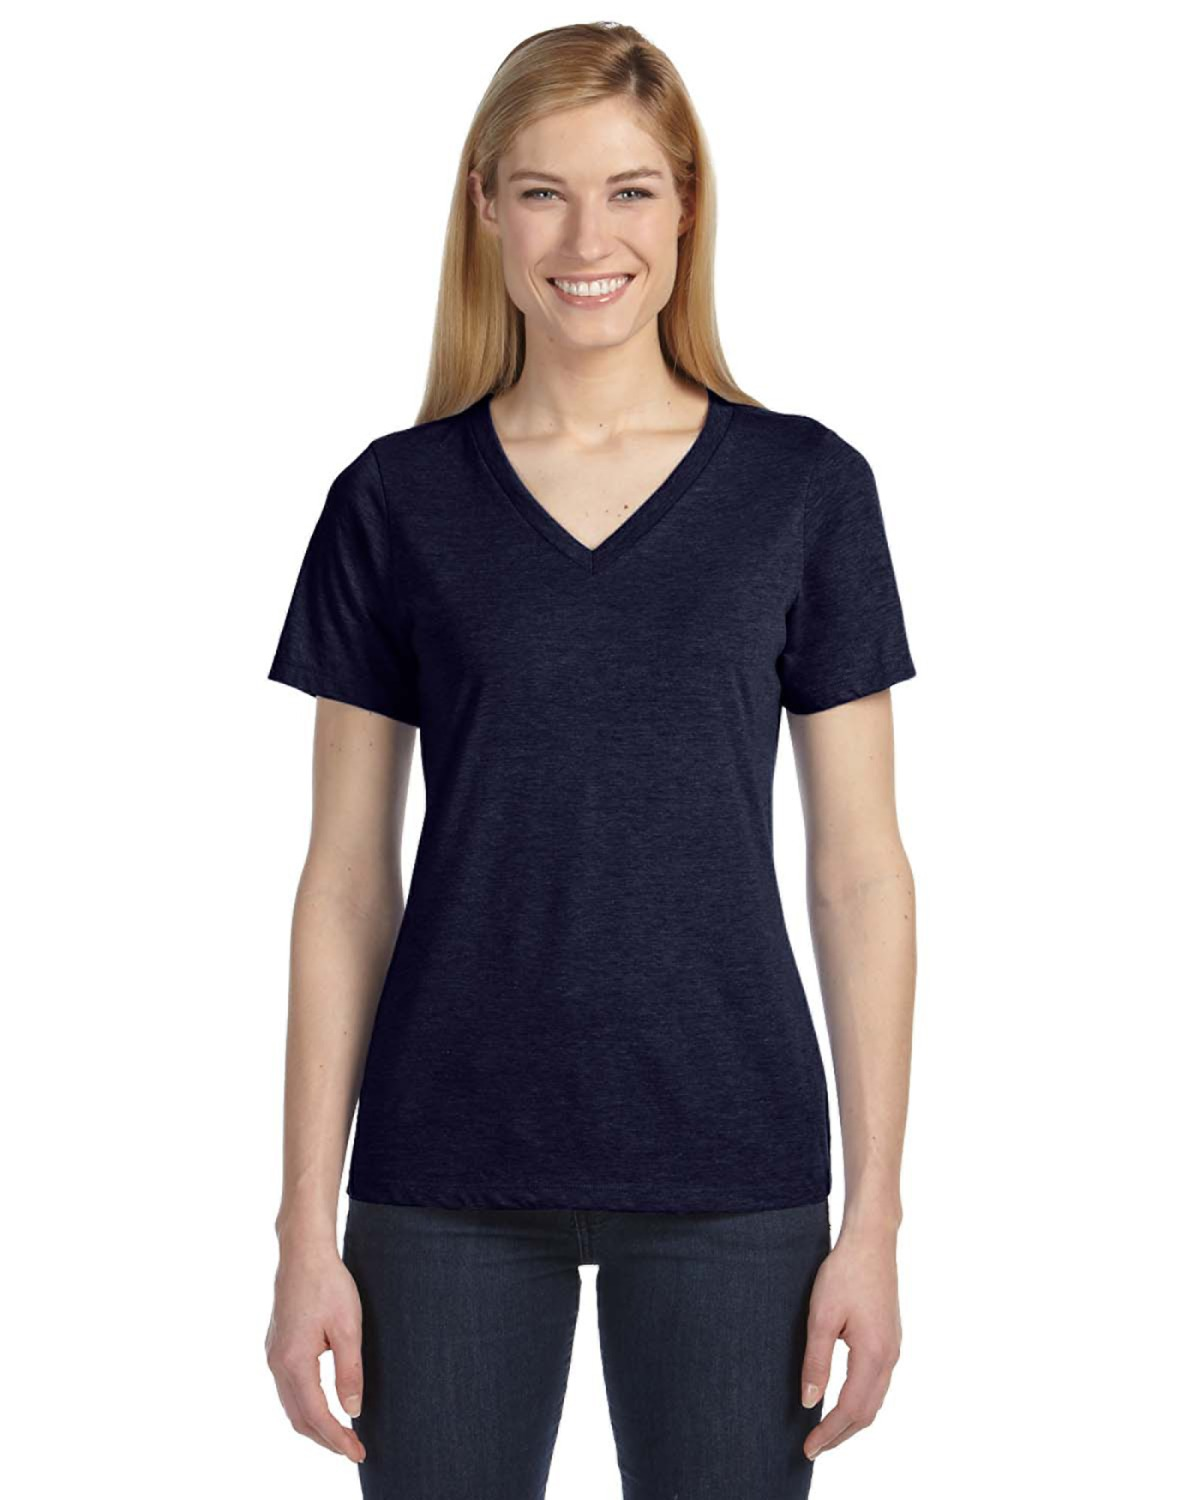 Missy Made In The Usa Jersey Short Sleeve V Neck T Shirt